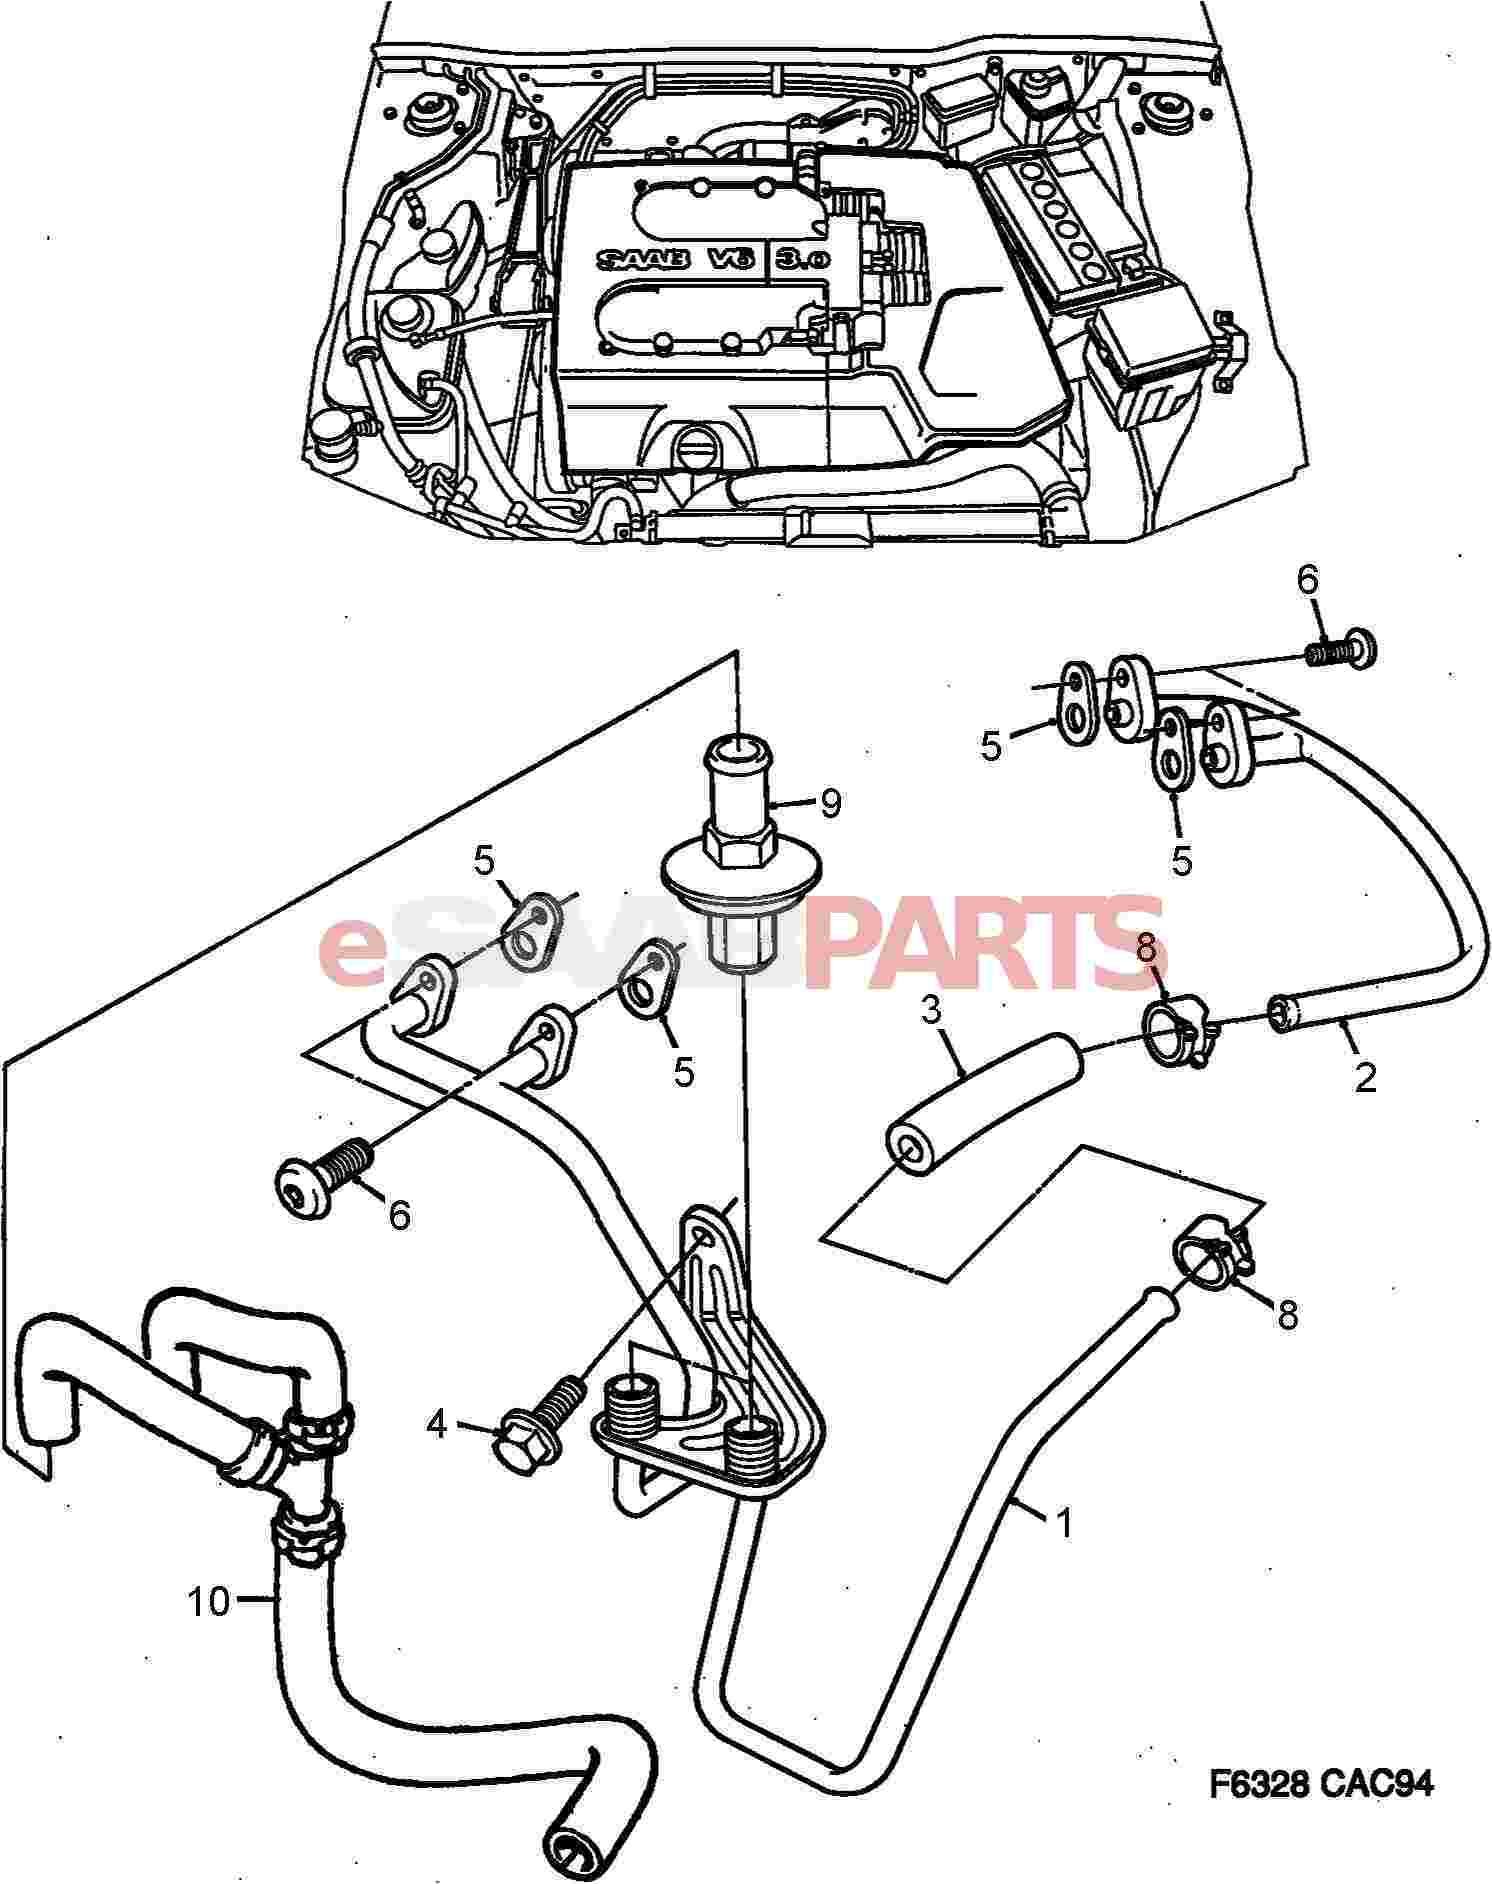 Saab 9000 Engine Diagram Reinvent Your Wiring Esaabparts Com U003e Parts Emissions Sai Check Rh 1997 Aero 1988 Turbo